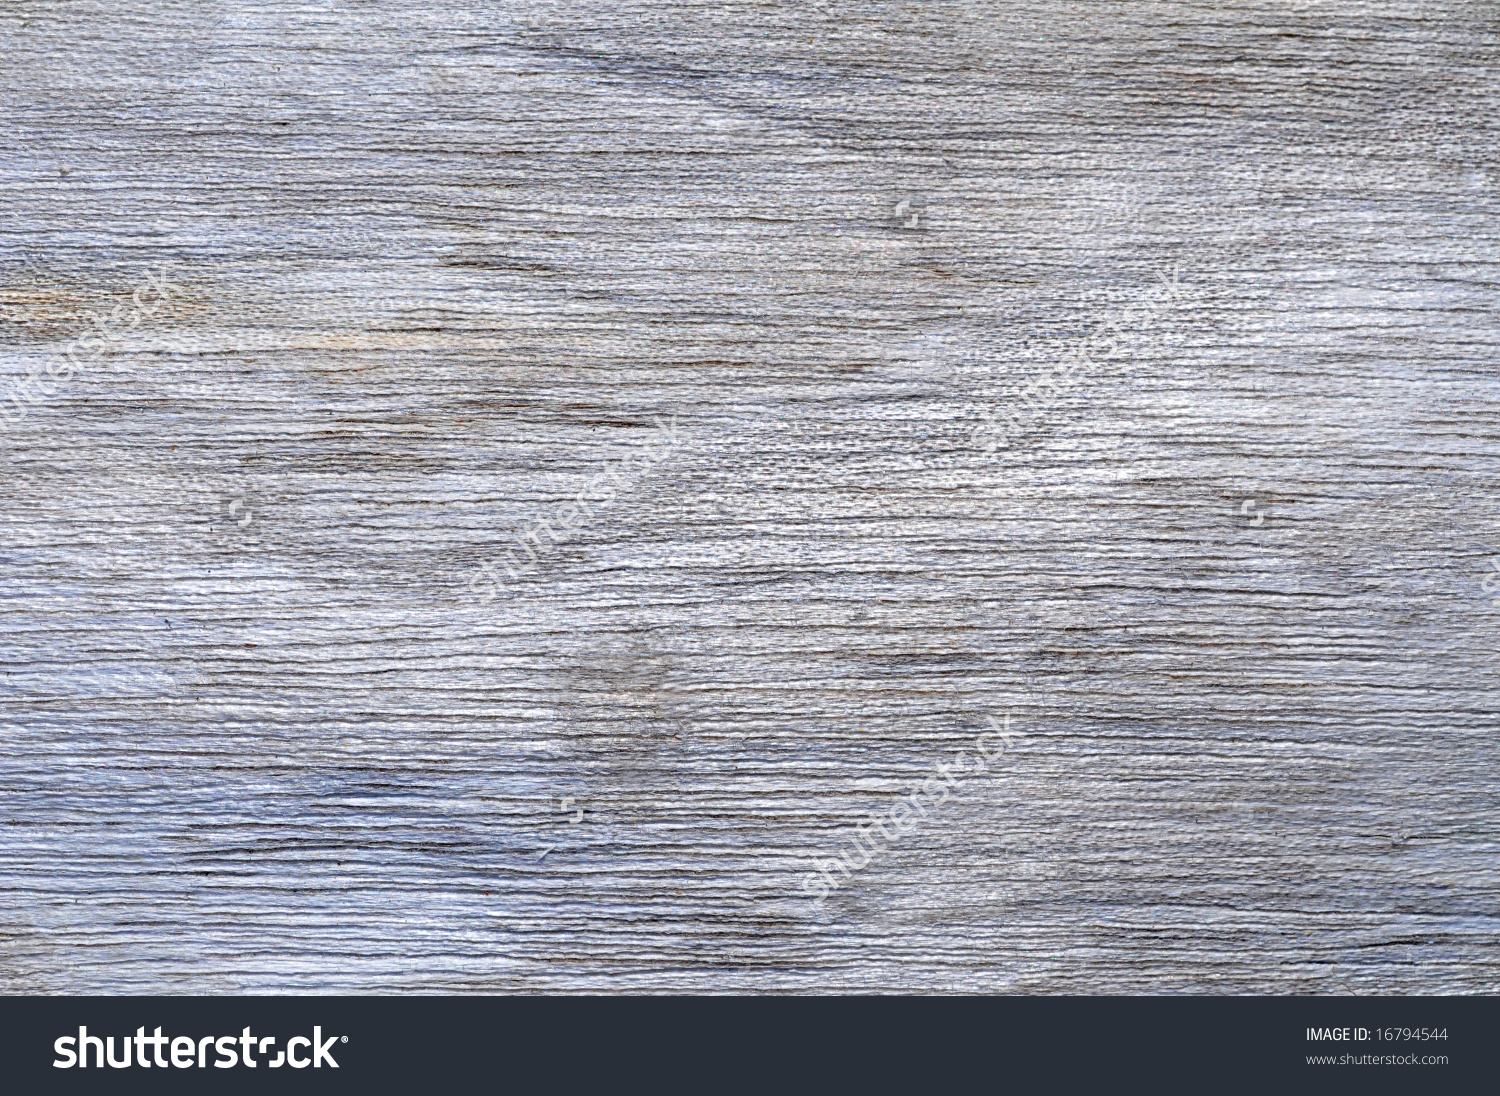 Bleached Driftwood Texture Stock Photo 16794544.